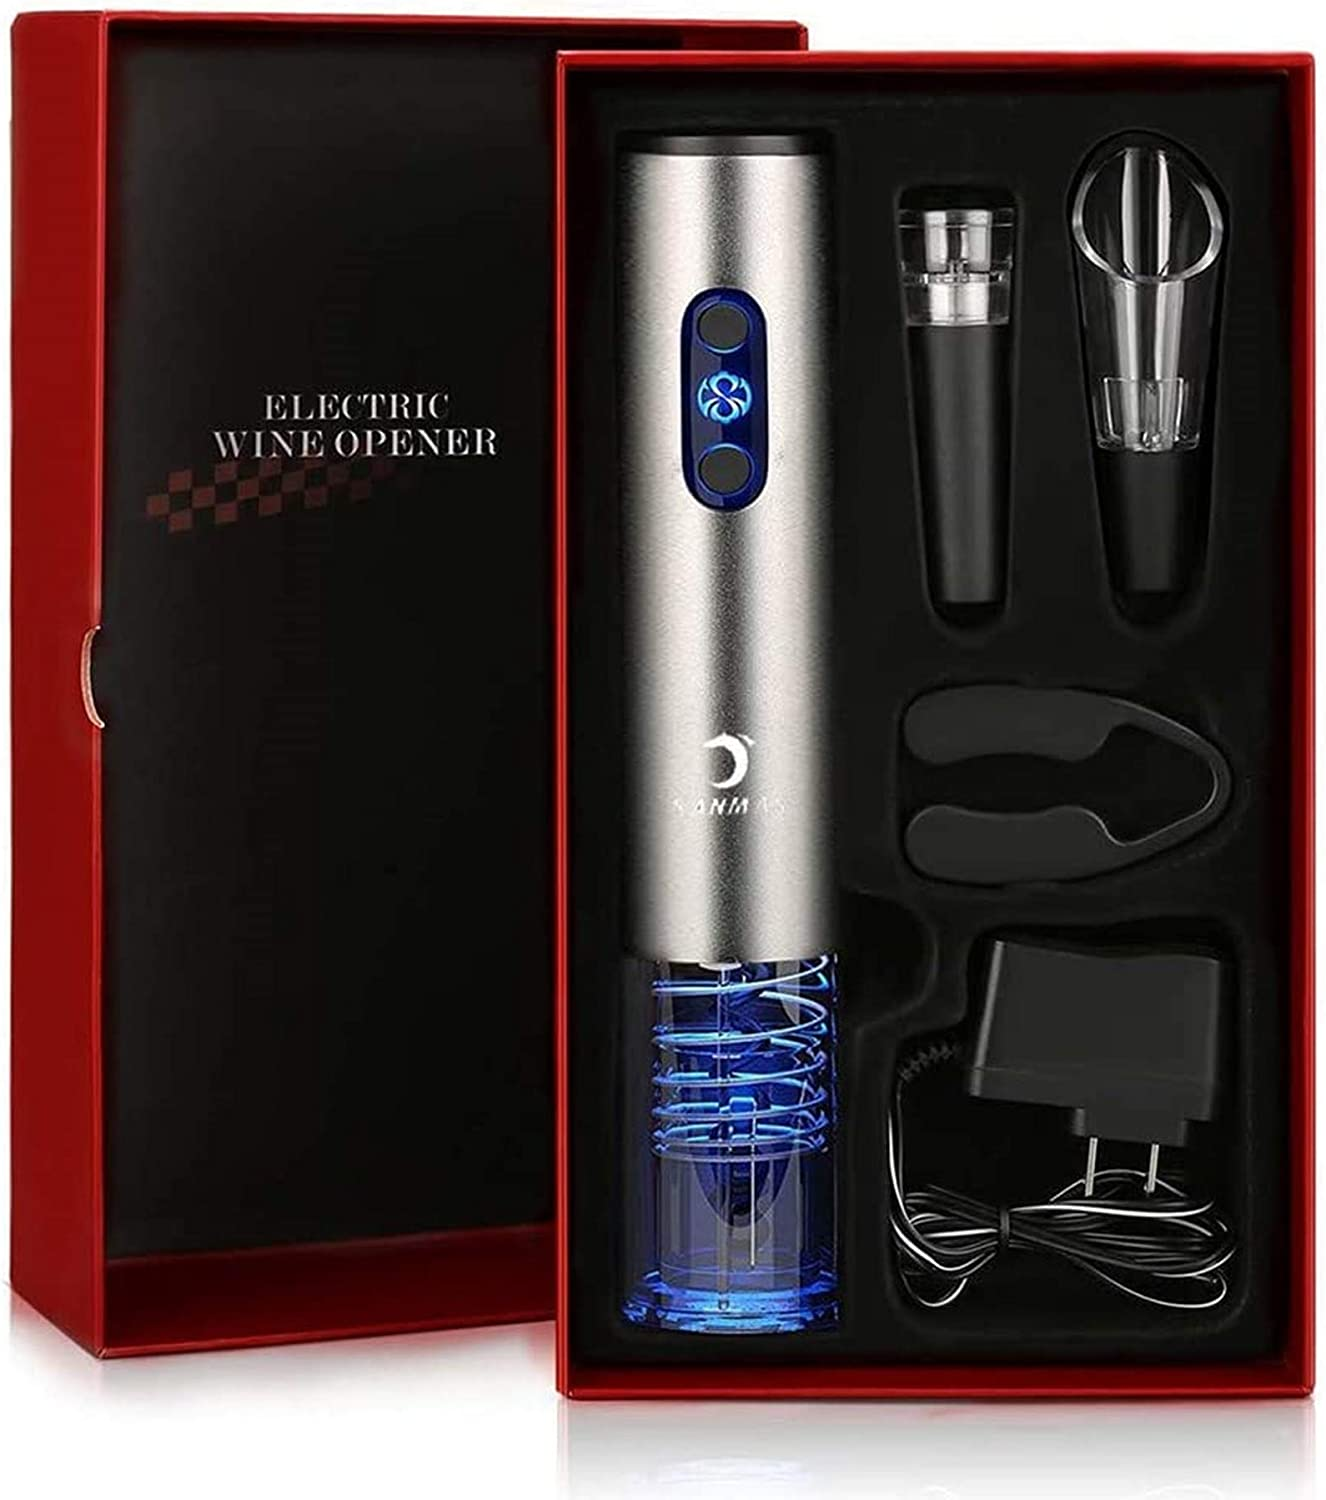 Jf Electric Christmas Gift 2020 Amazon.com: Electric Wine Opener Gift Set, Rechargeable Cordless